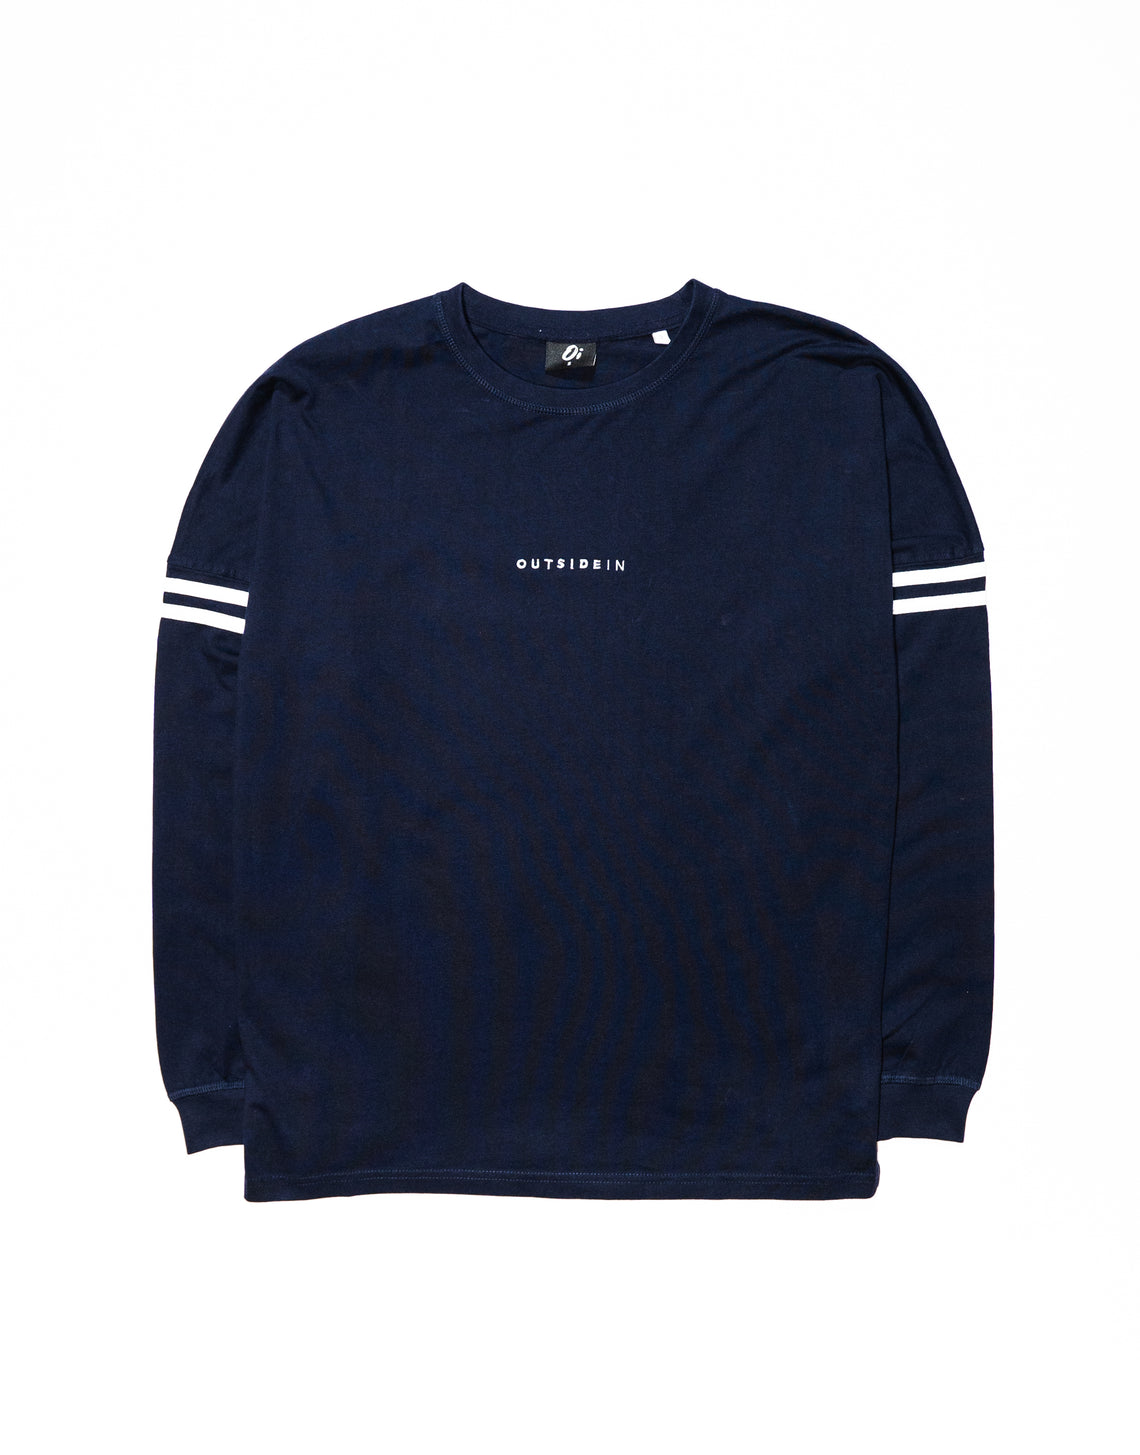 Navy Long Sleeve OutsideIn Embroidered T-shirt - OutsideIn